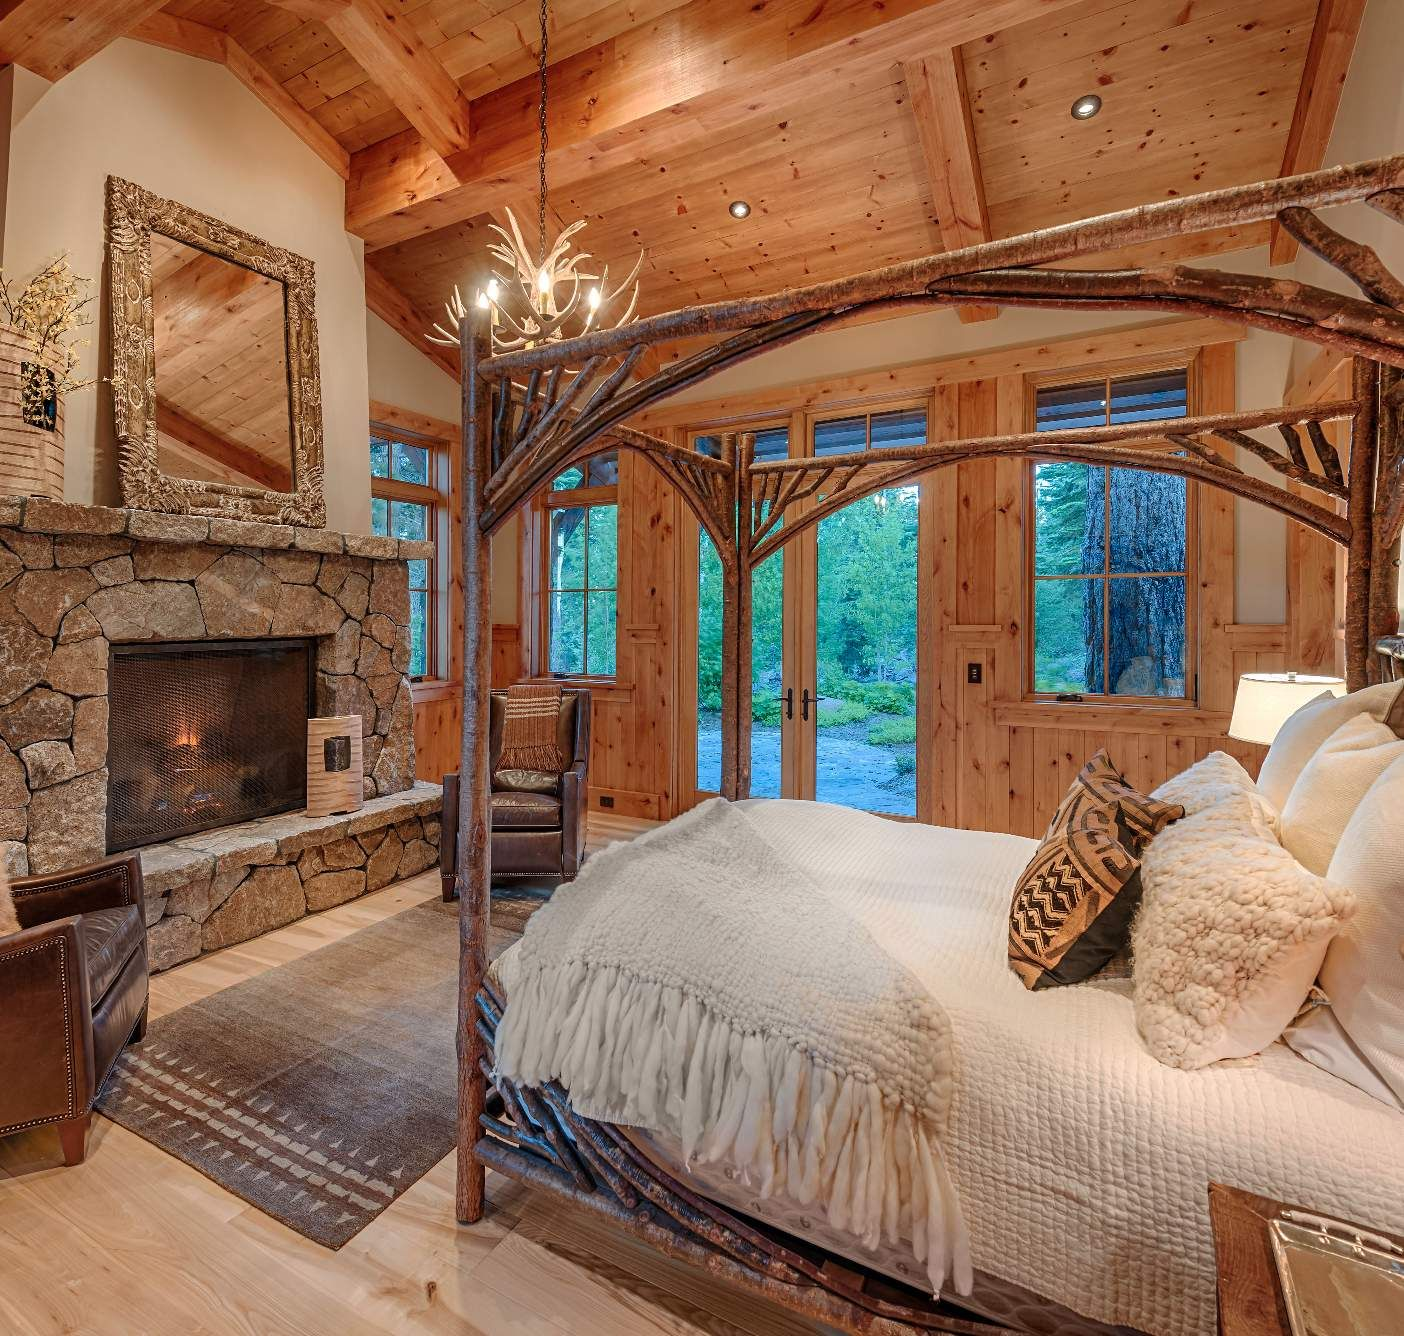 19 Log Cabin Home Décor Ideas: Martis Camp Lot No. 19 - Style Estate -